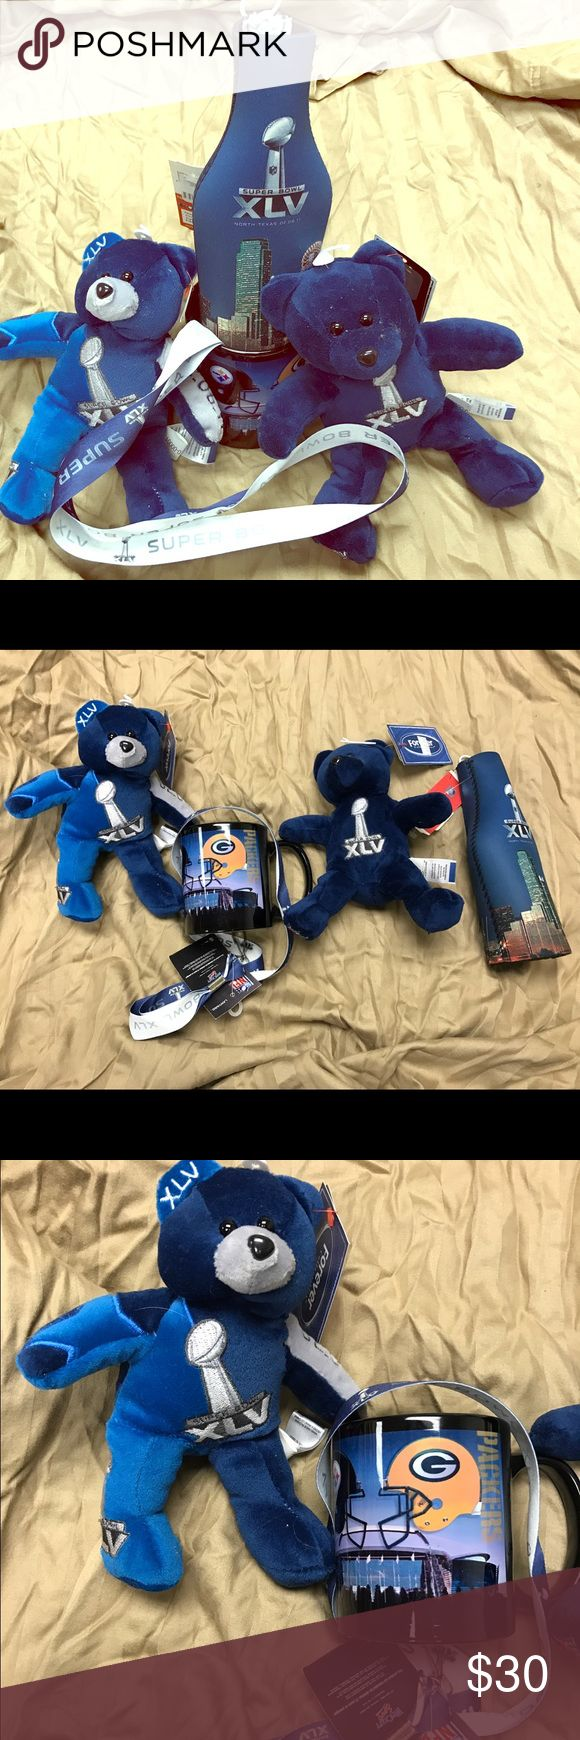 Super Bowl 45 accessories! Super Bowl XLV! 2 beanie baby type bears, one lanyard & one coffee mug, all new with tags! Also a white super bowl hat with blue embroidery (used condition) included if you want. Celebrate that great Packers win!! Other